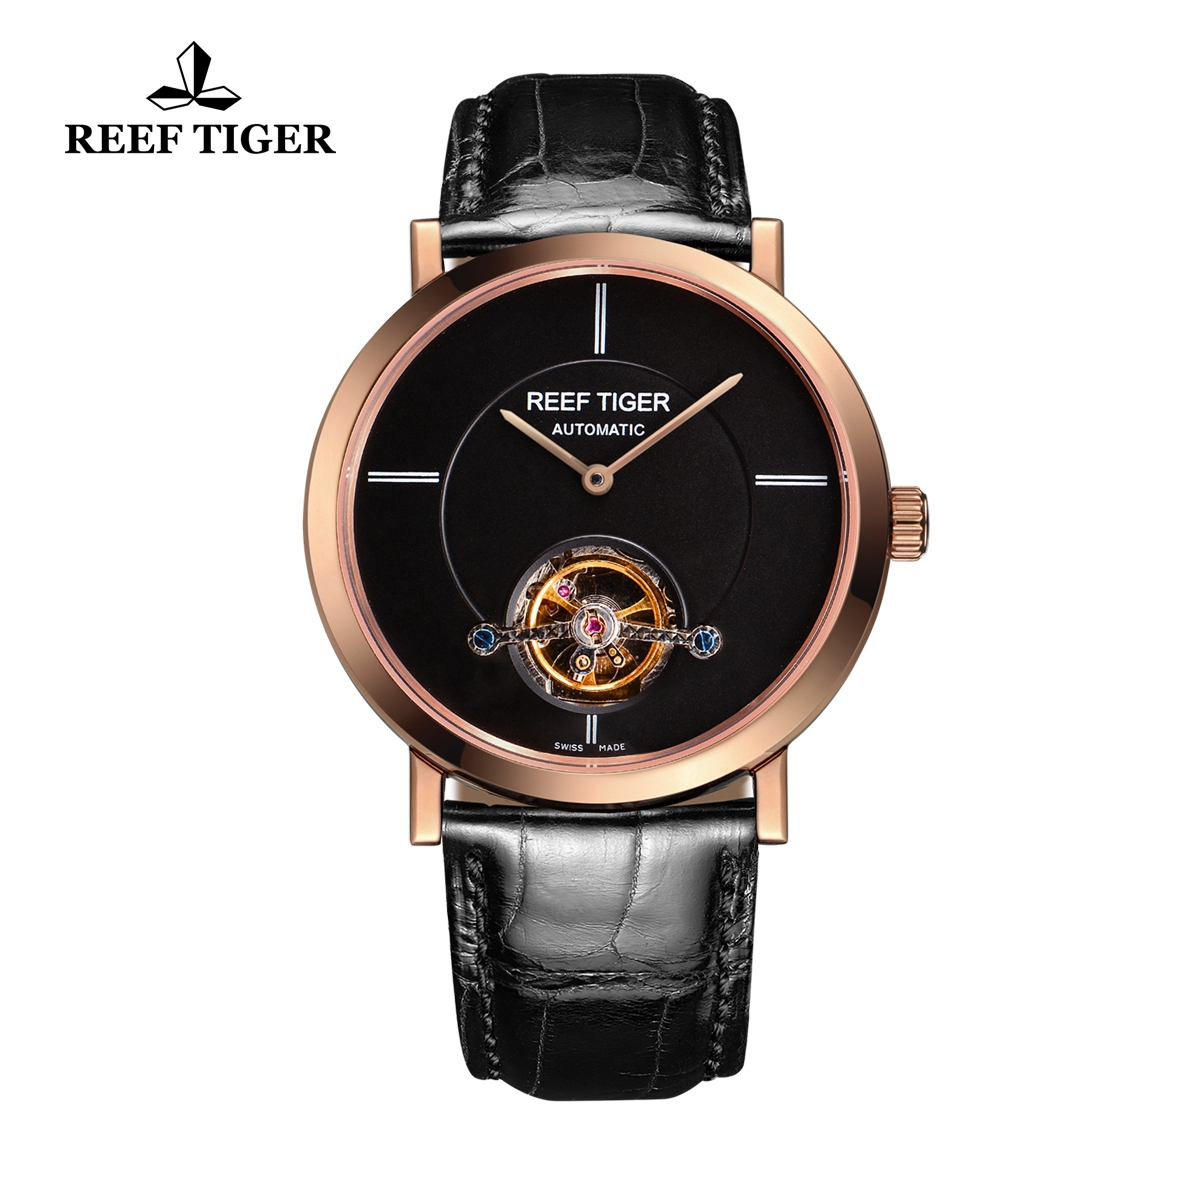 Reef Tiger Business Watch Rose Gold Black Dial Automatic Tourbillon Watch RGA1610-PBB